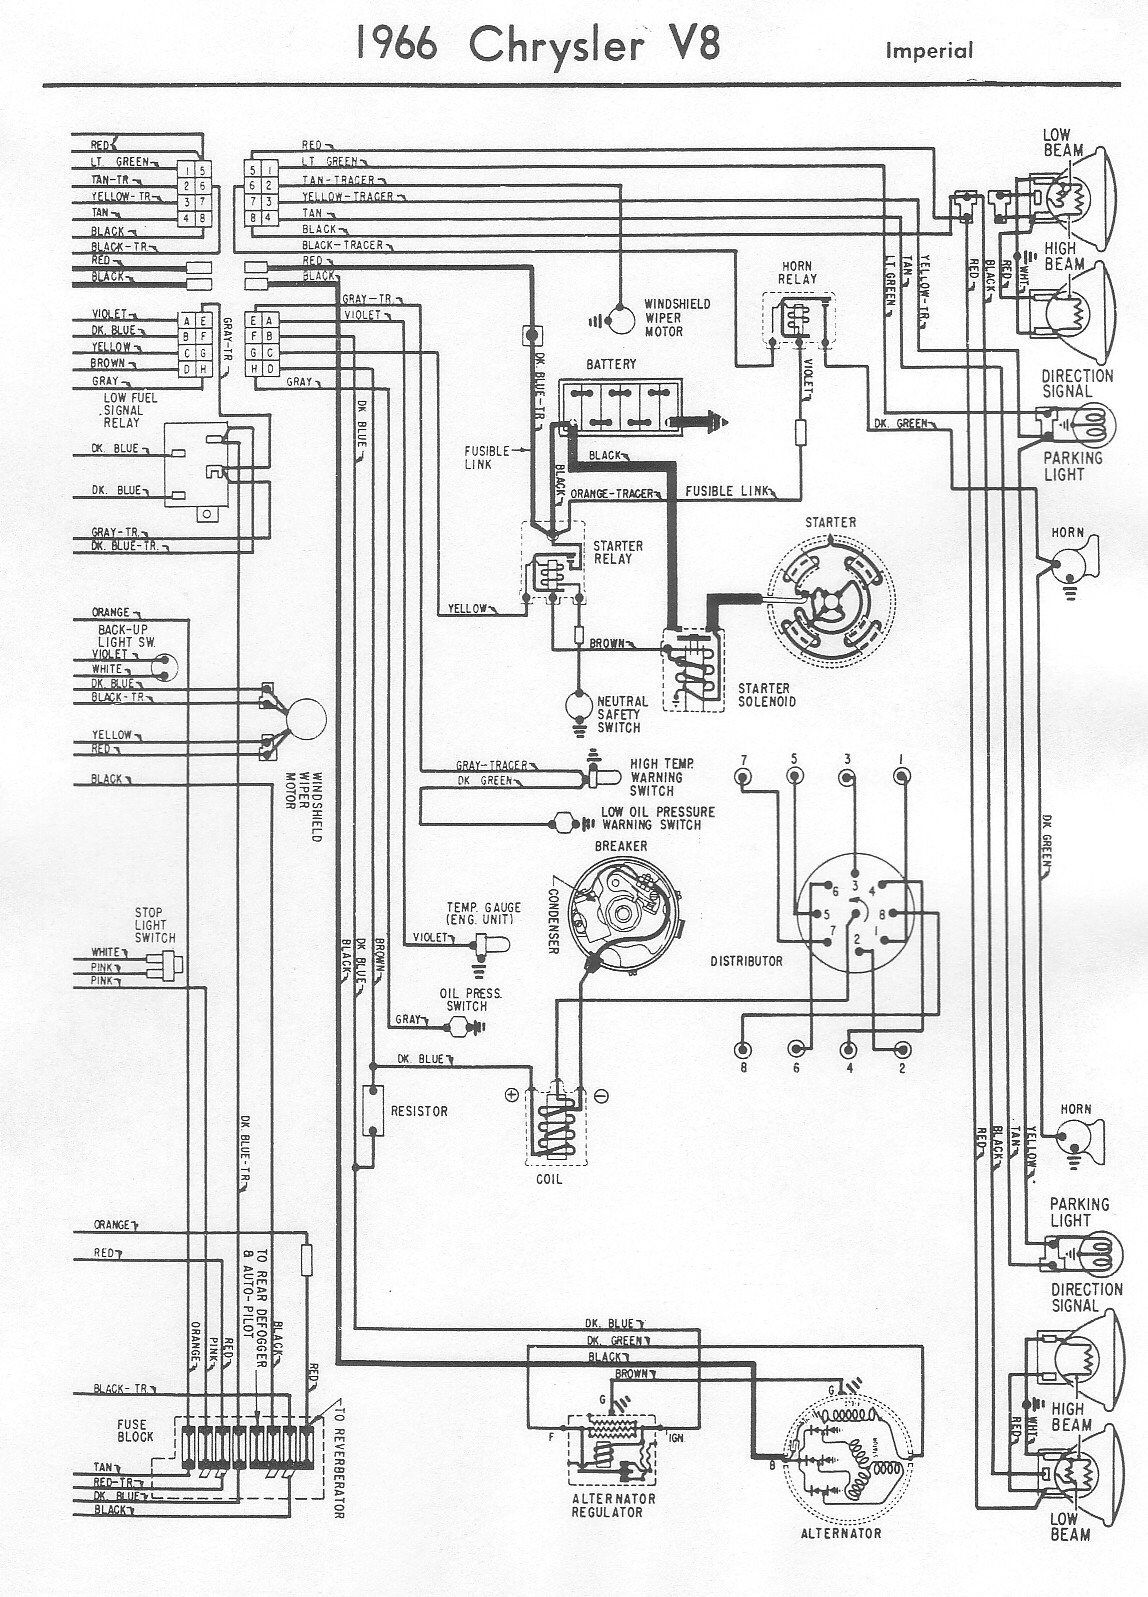 Chrysler 300 Schematic Wiring Library Auto Electrical Codes 85 Camaro Dash Diagram Headlights 1968